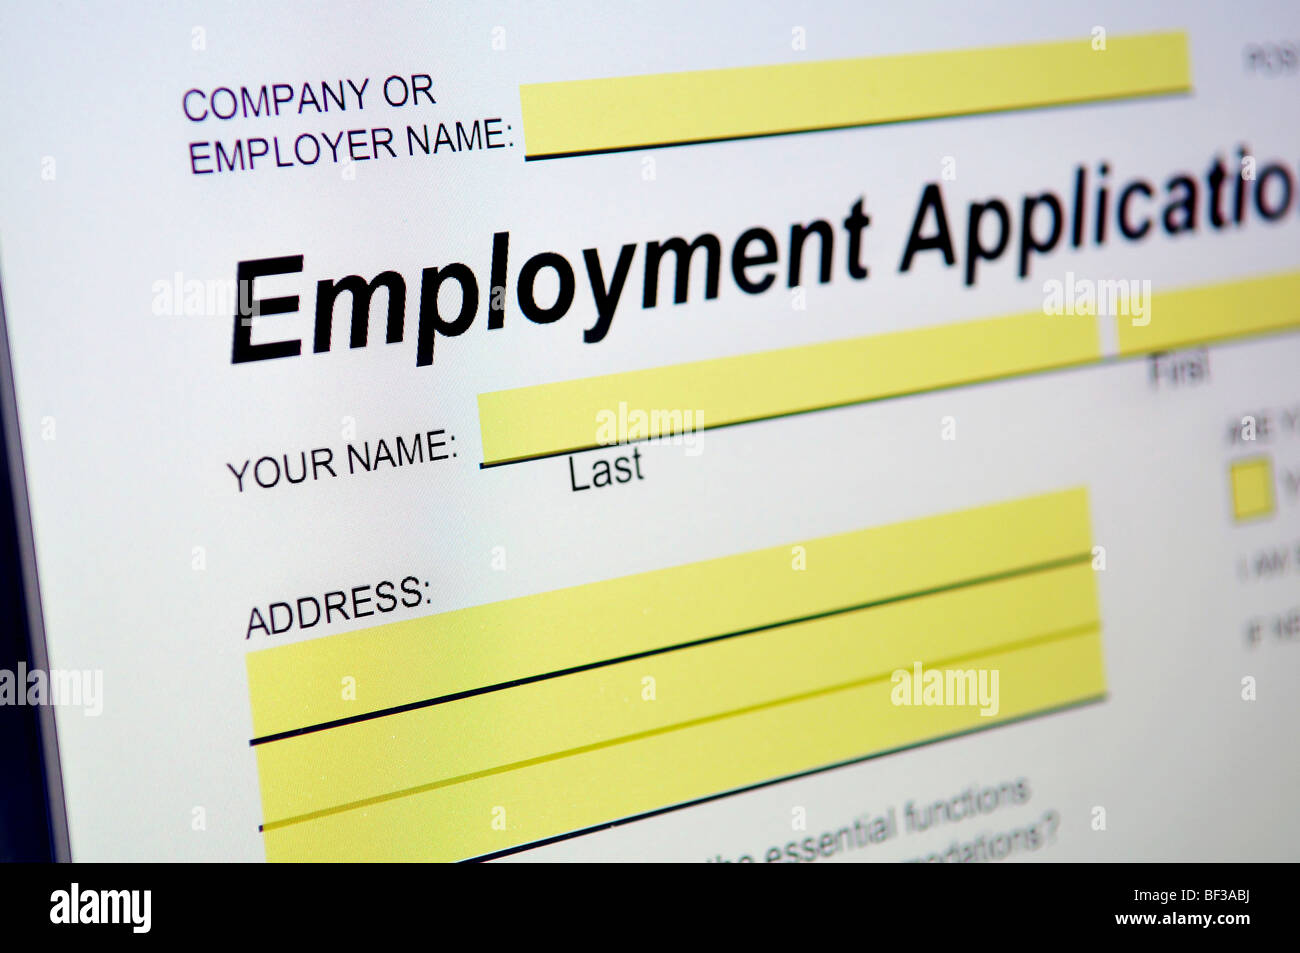 Employment Application on computer screen - Stock Image